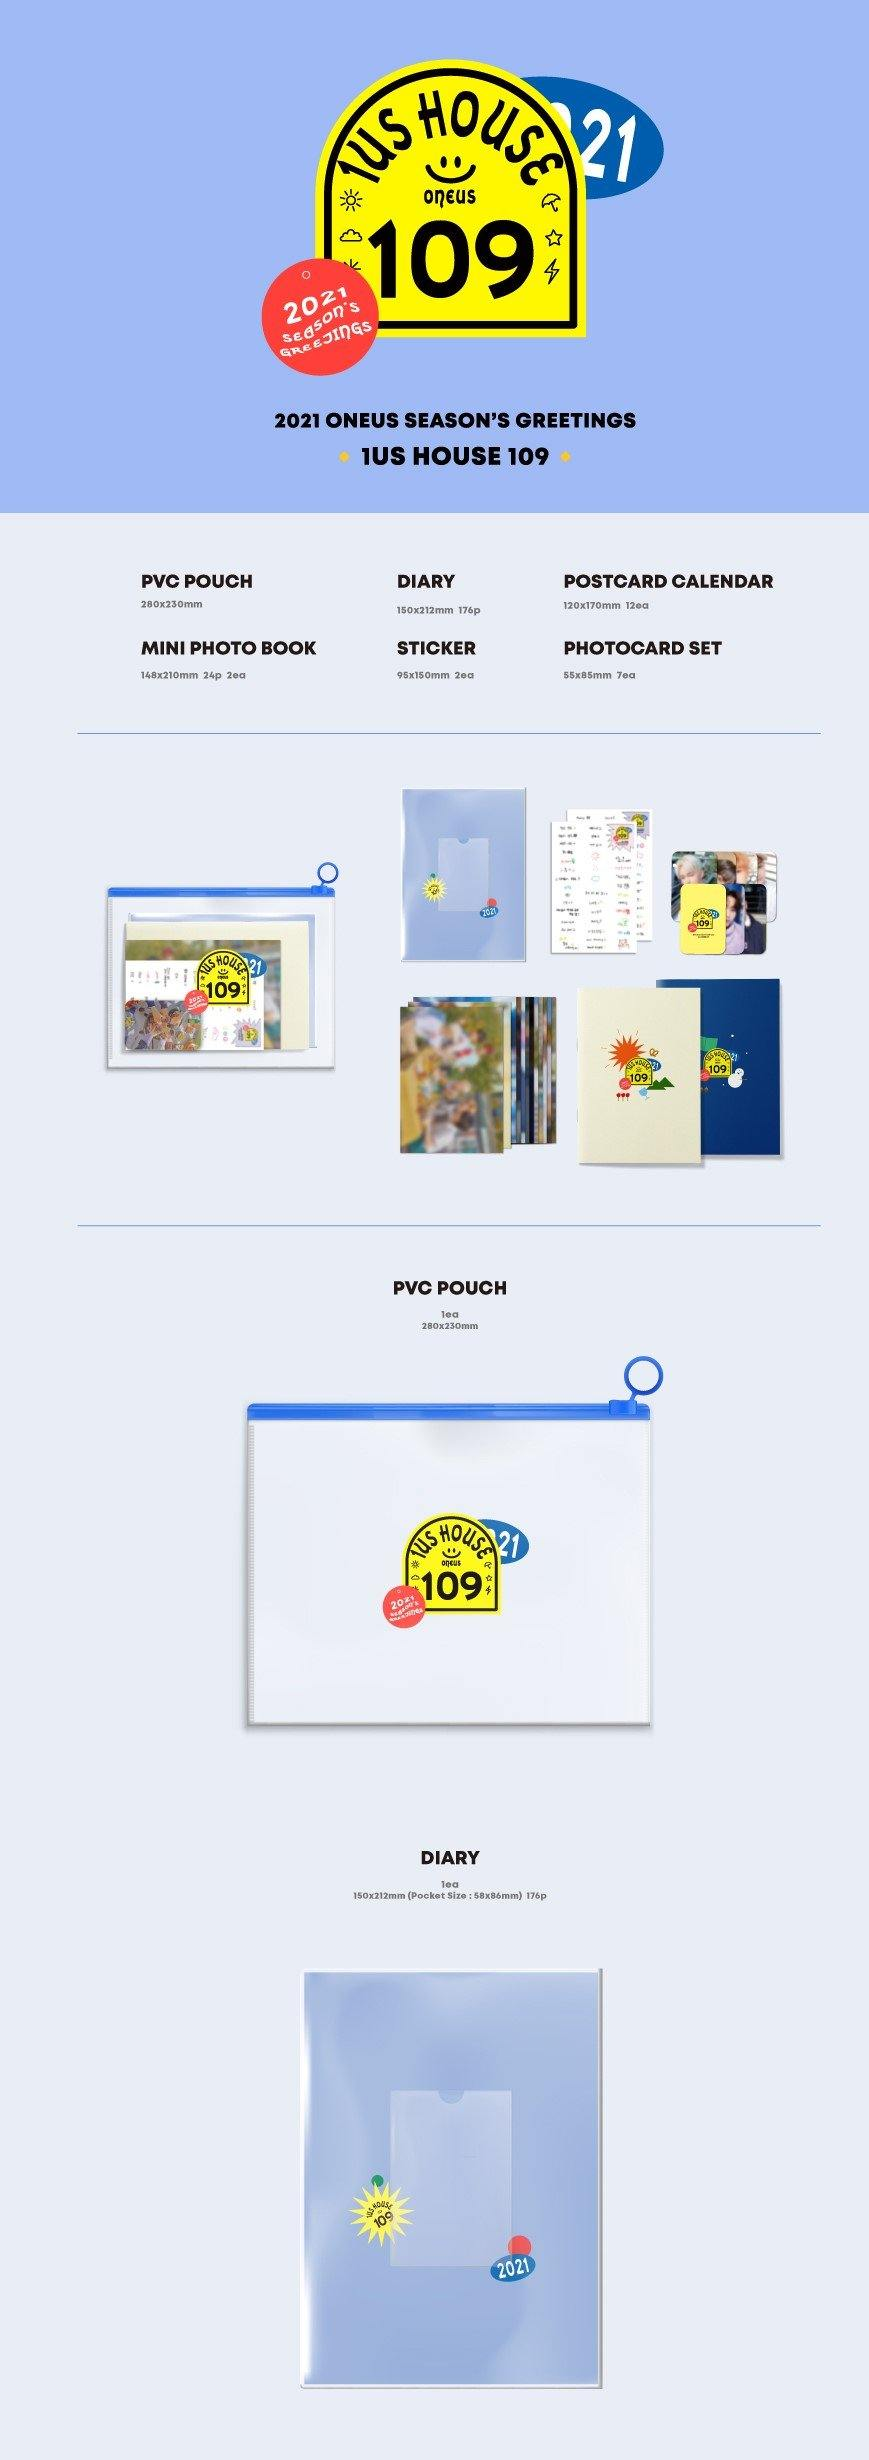 ONEUS- 2021 Season's Greetings - Pre-Order